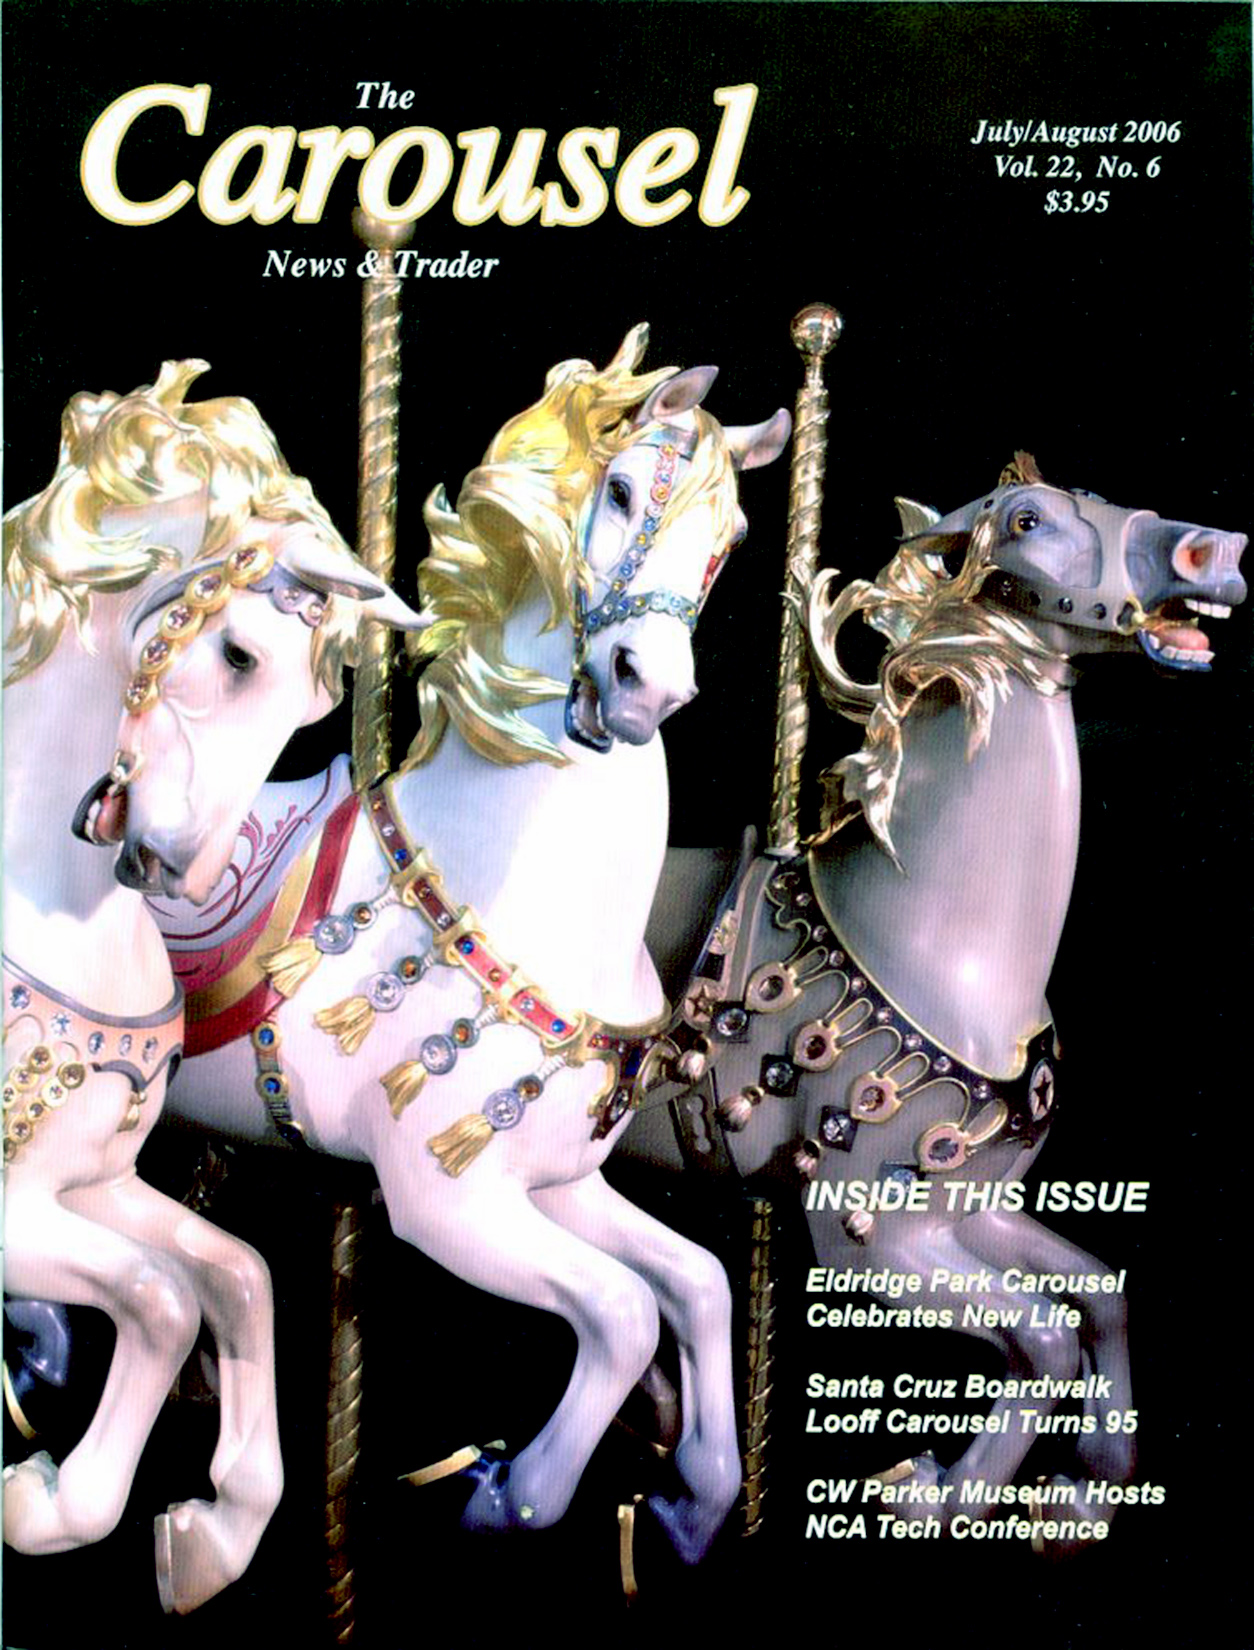 Carousel News Cover 7 8 2006 Illions Supreme Horses